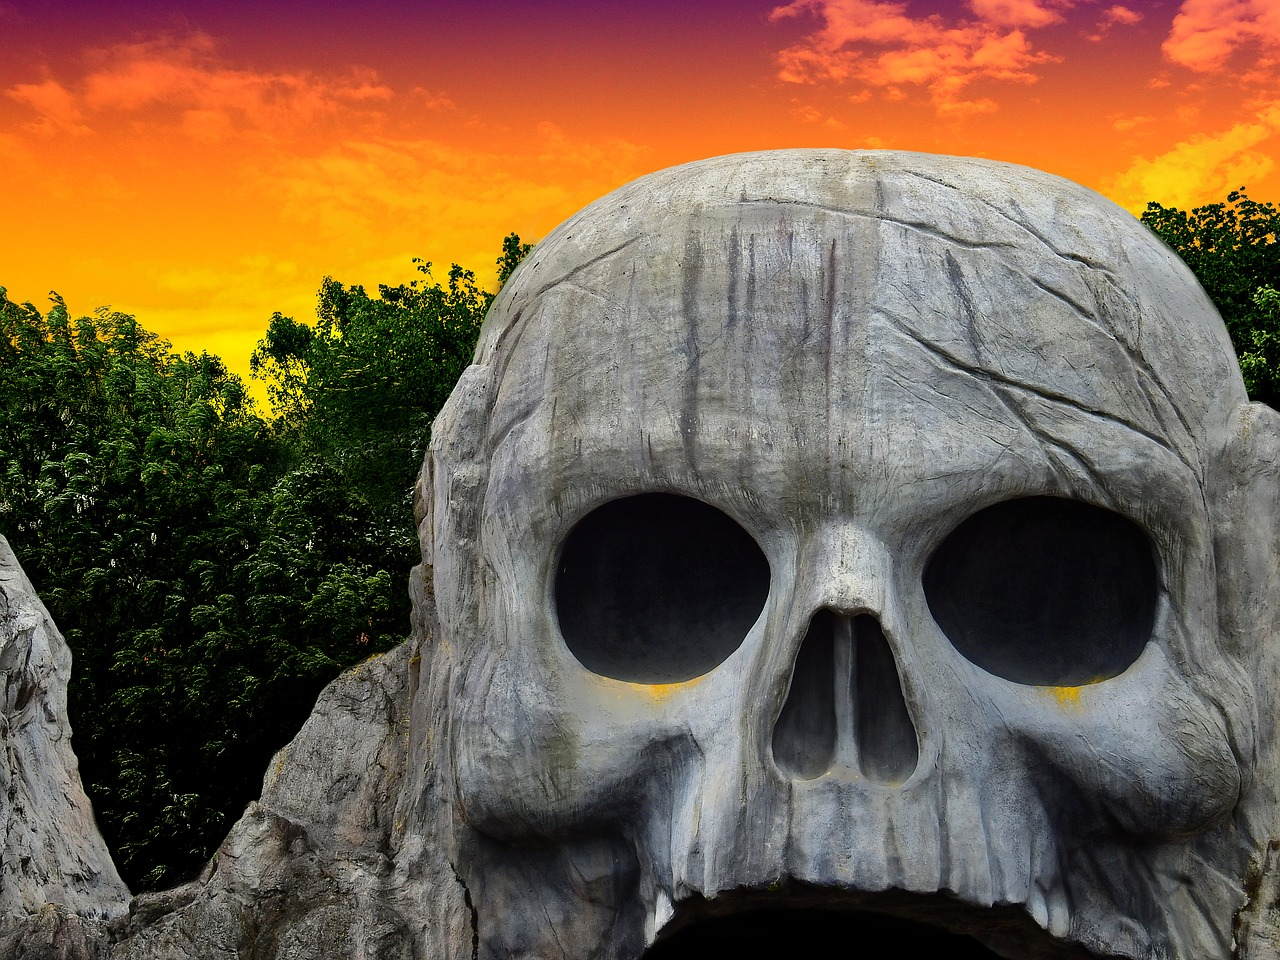 stone,rock,head,skull and crossbones,skull,skull bone,pirates,helloween,fear,mood,death,risk,dangerous,free pictures, free photos, free images, royalty free, free illustrations, public domain